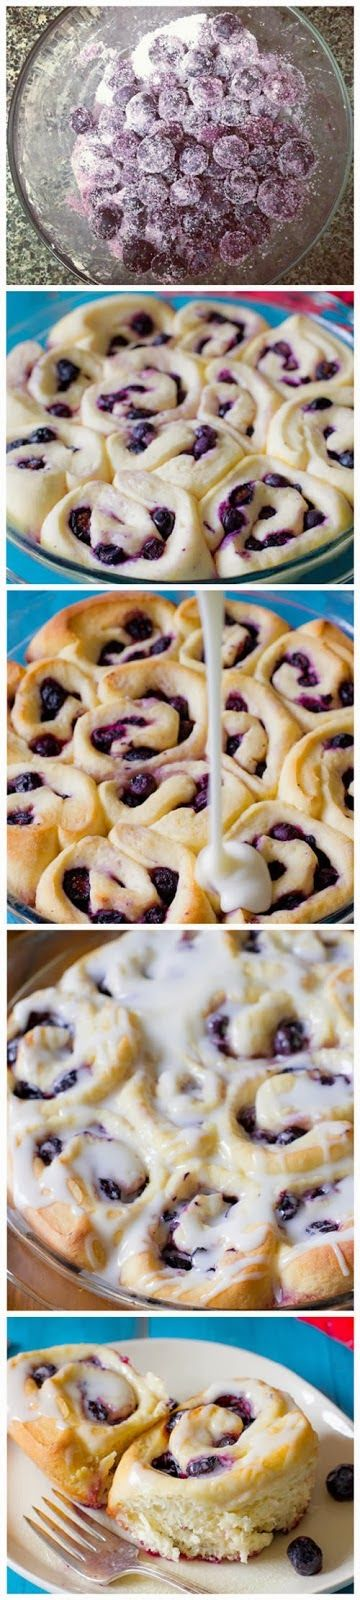 Blueberry Sweet Rolls with Lemon Glaze     Ingredients:   ROLLS       2 and 3/4 cups (345g) all-purpose flour  3 Tablespoons granulated s...